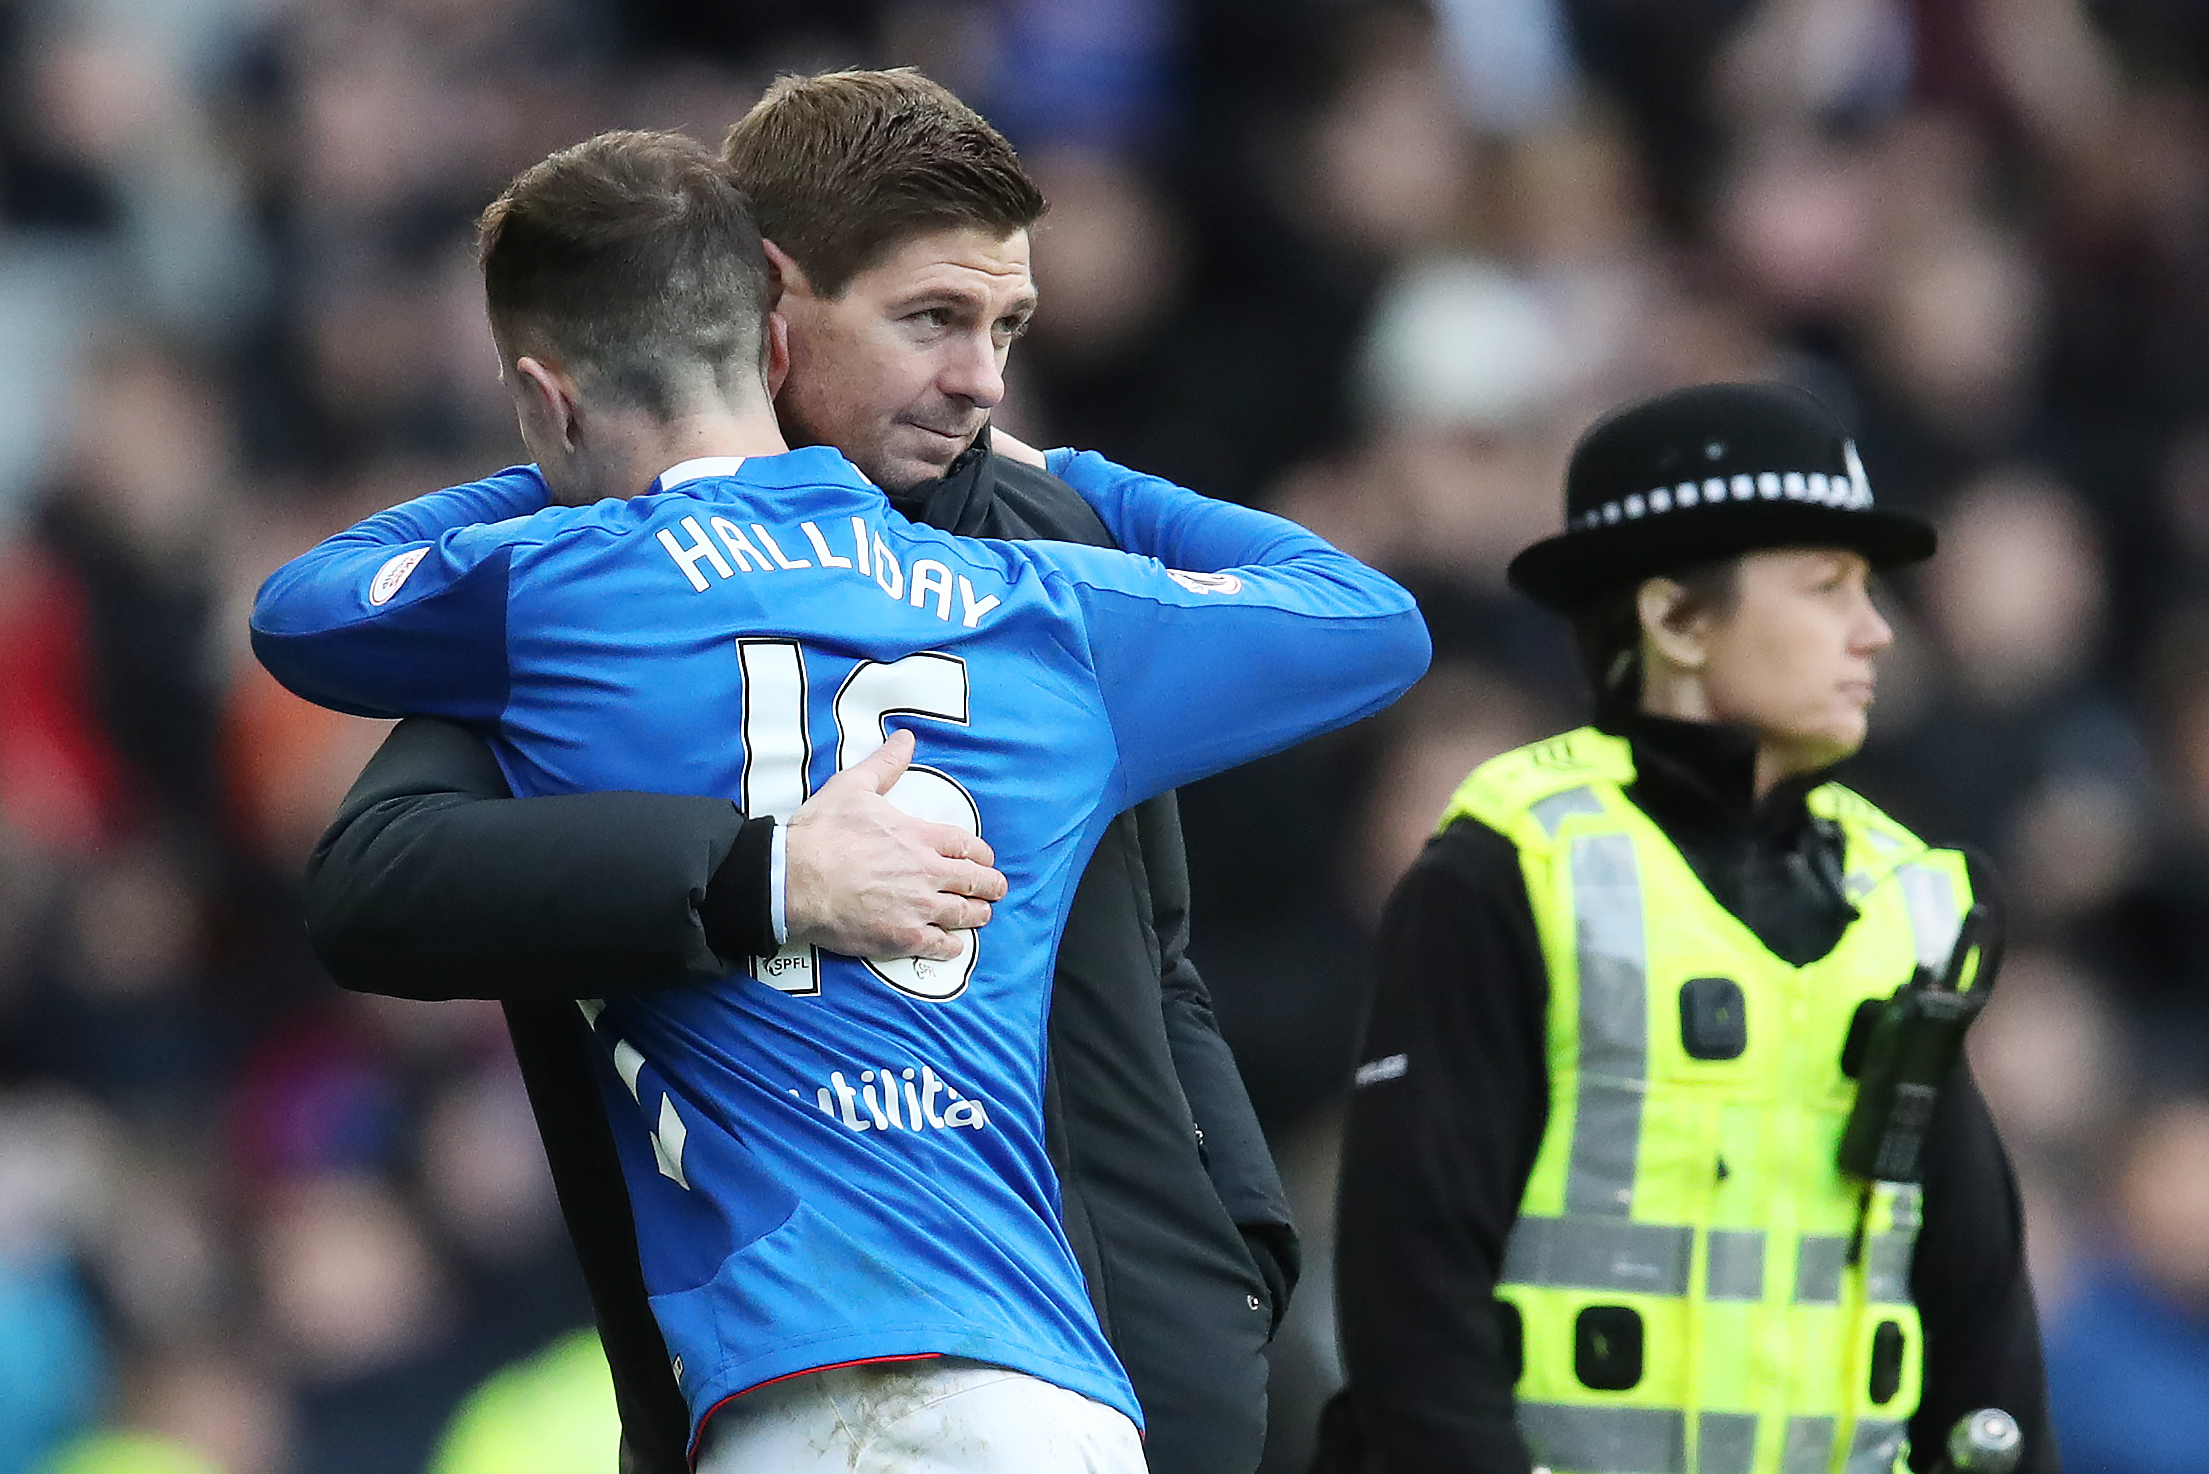 Andy Halliday: This is the most confident I've felt going into a campaign with Rangers